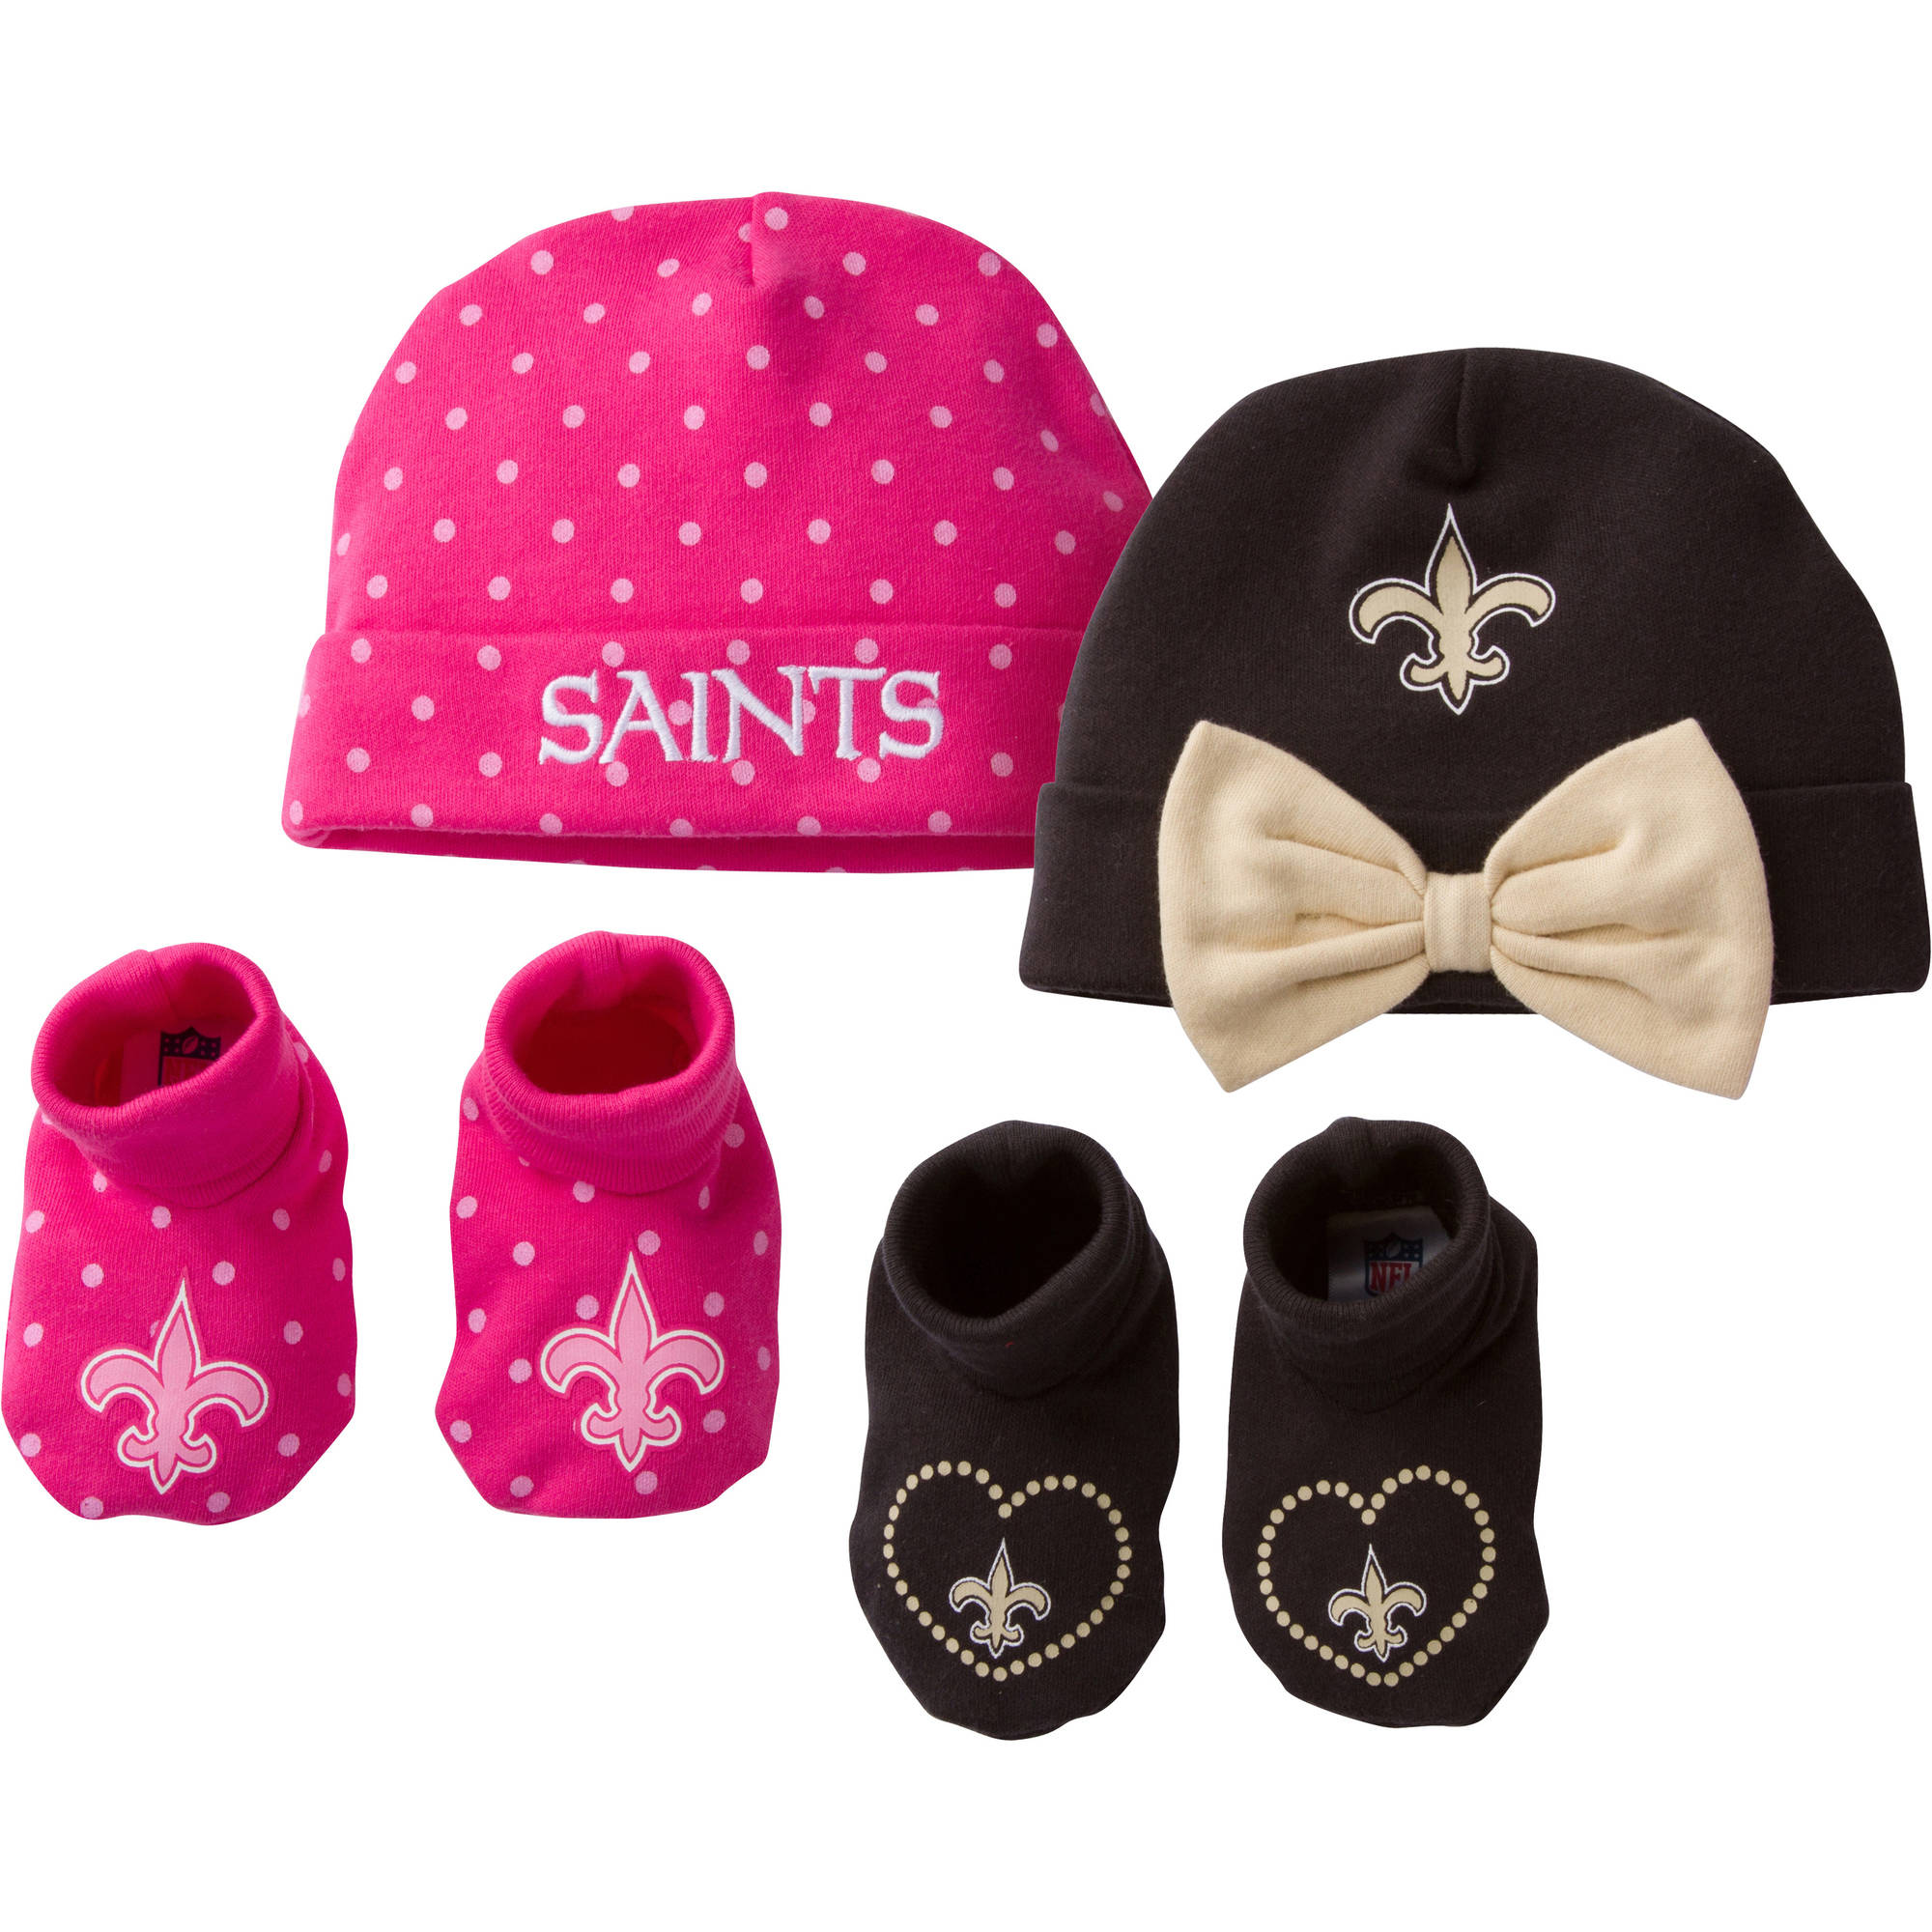 NFL New Orleans Saints Baby Girls Accessory Set, 2 Caps and 2 Booties, 4-Piece